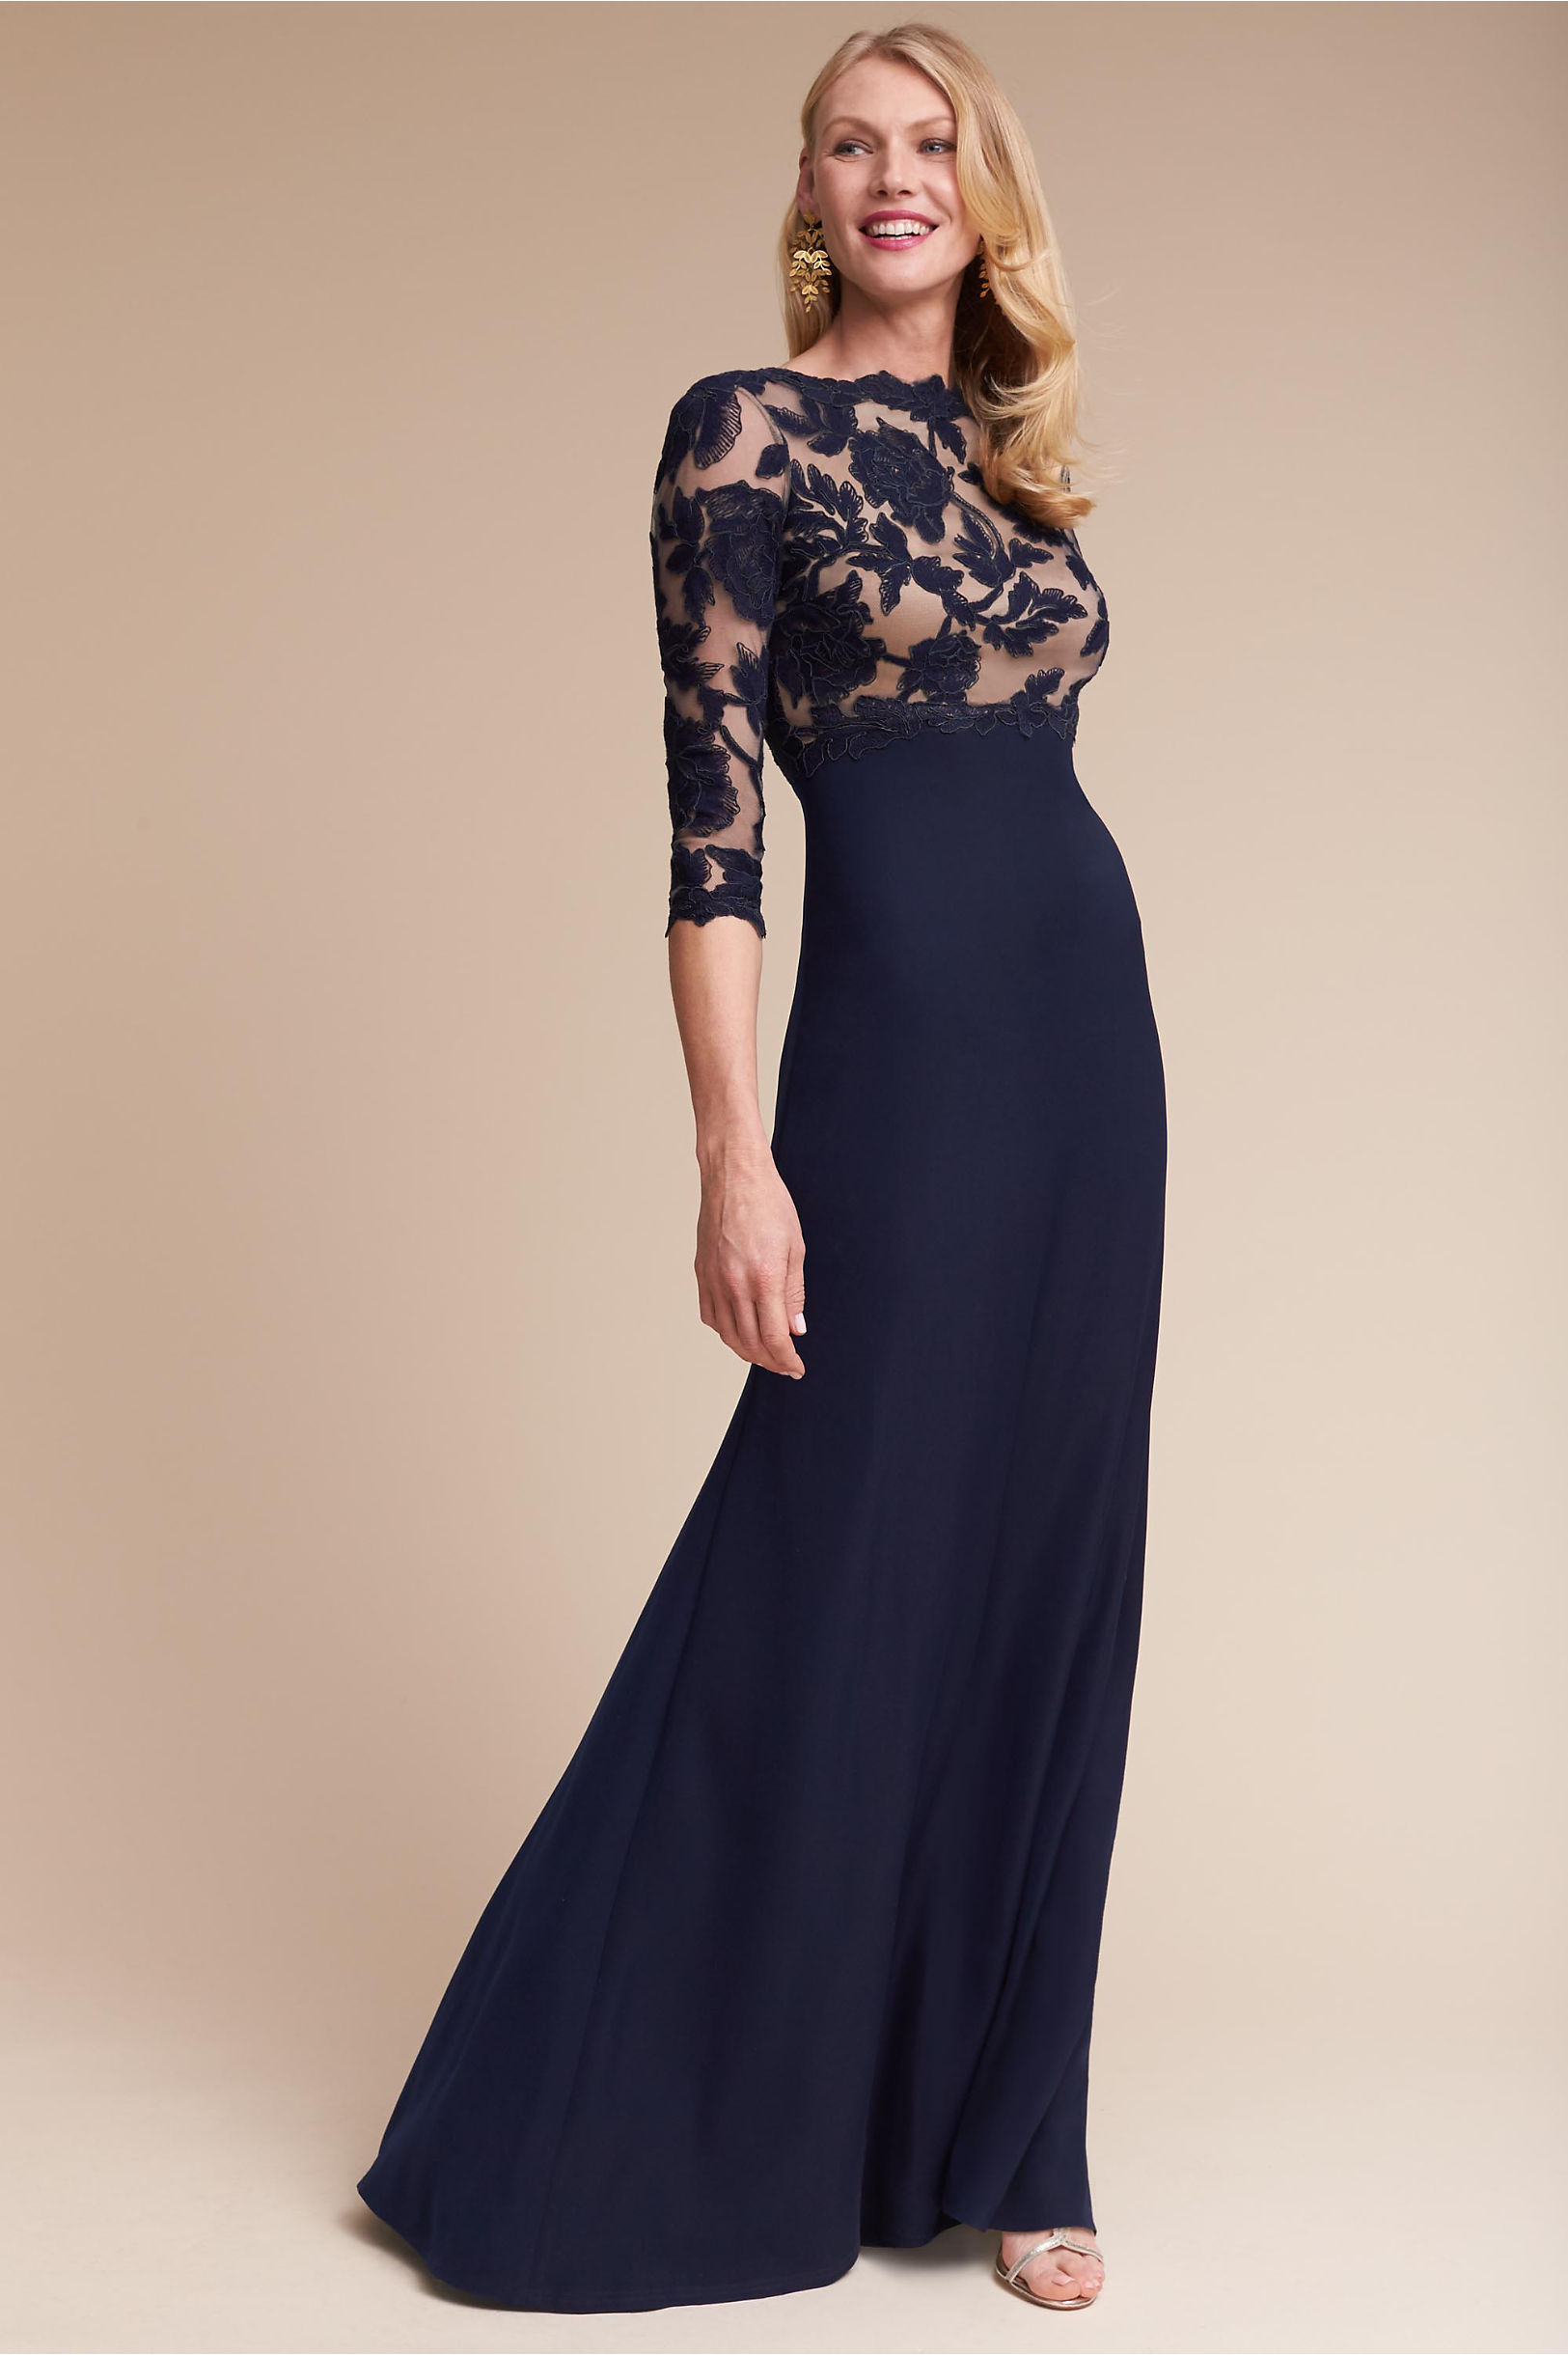 Delsea Dress in Sale | BHLDN